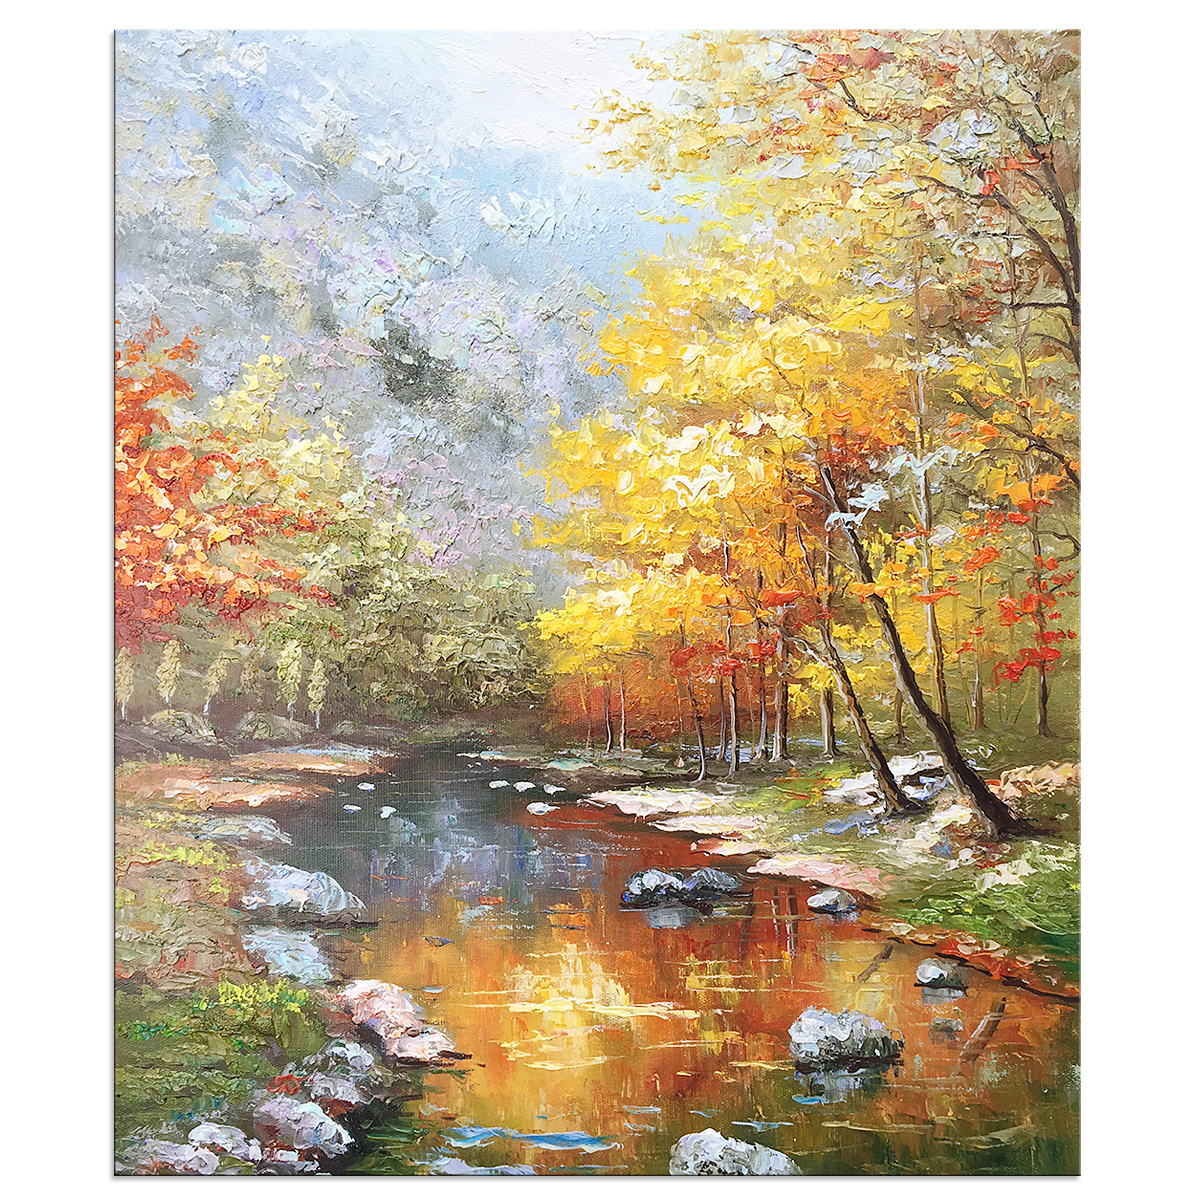 Modern Abstract Landscape Hand Painted Oil Painting Canvas Stretched Ready to Hang Nature Wall Art